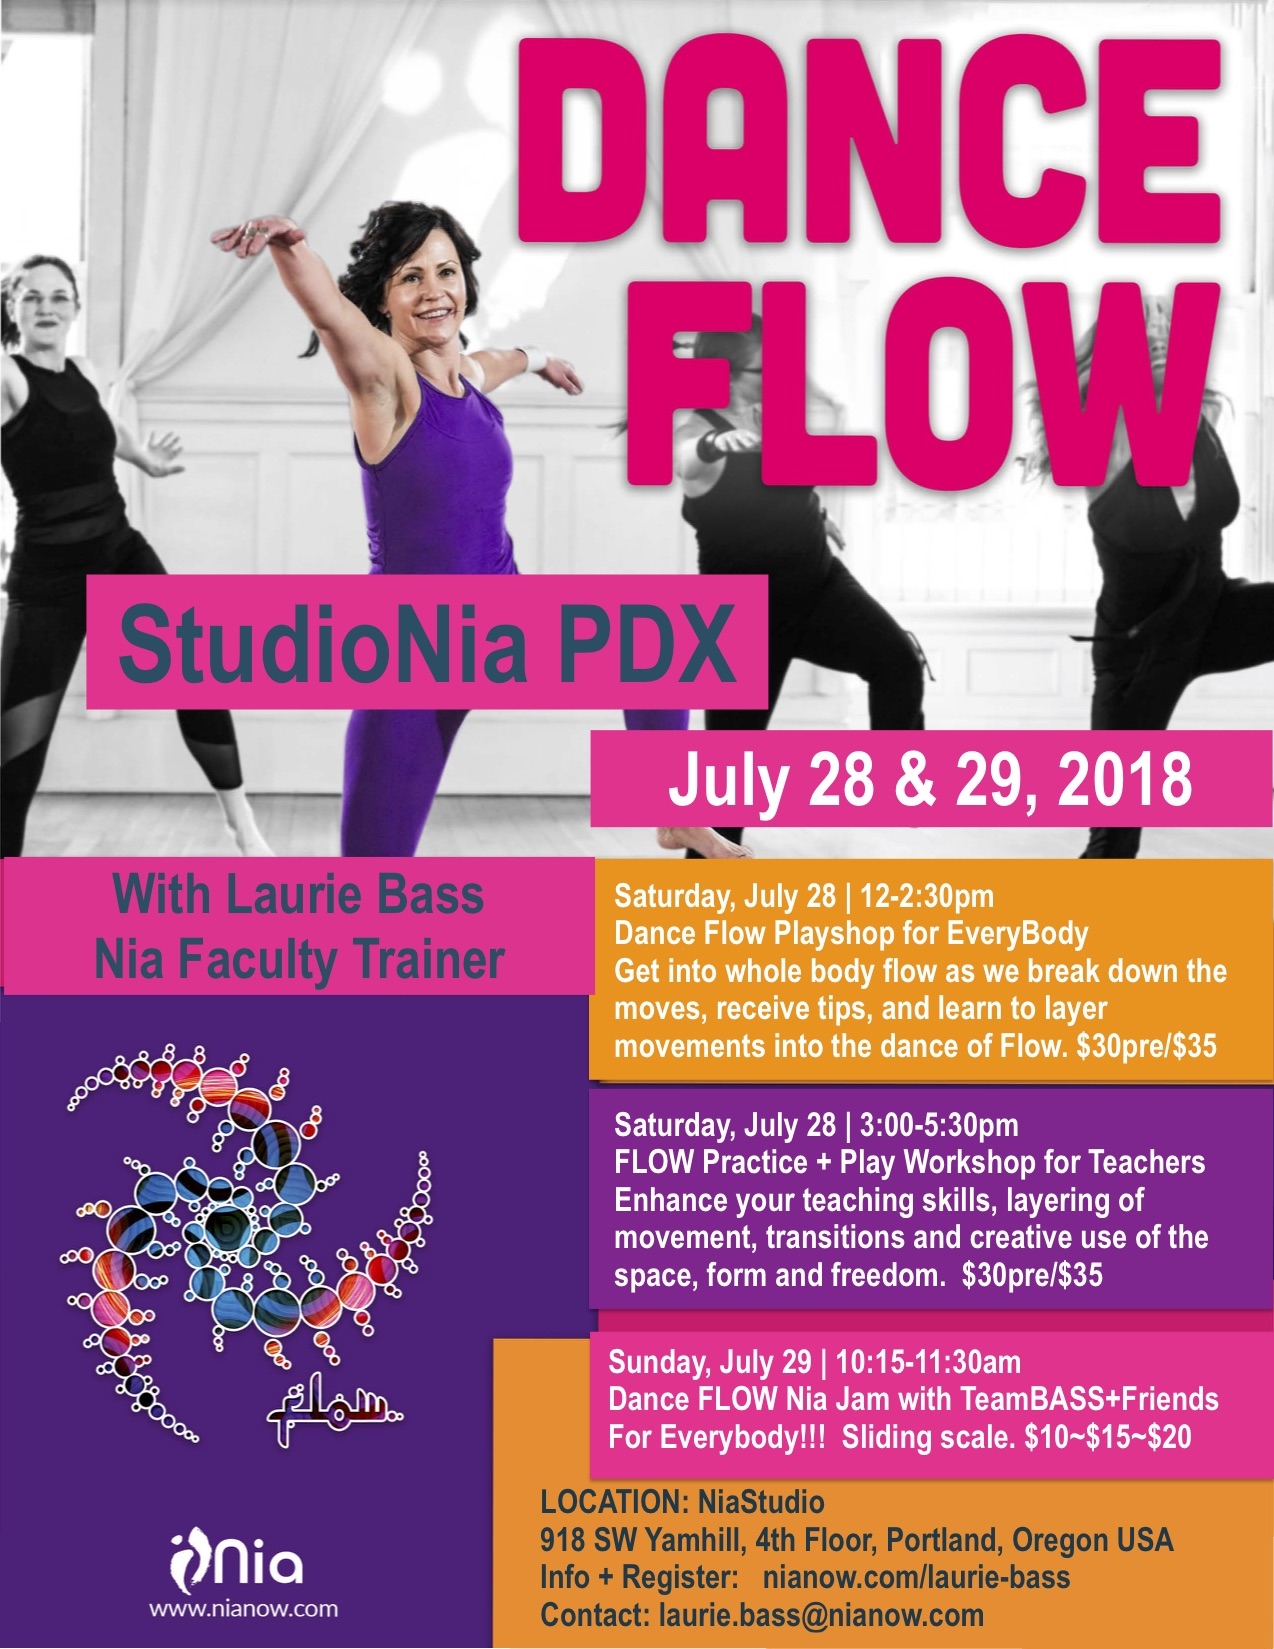 Dance Flow PDX